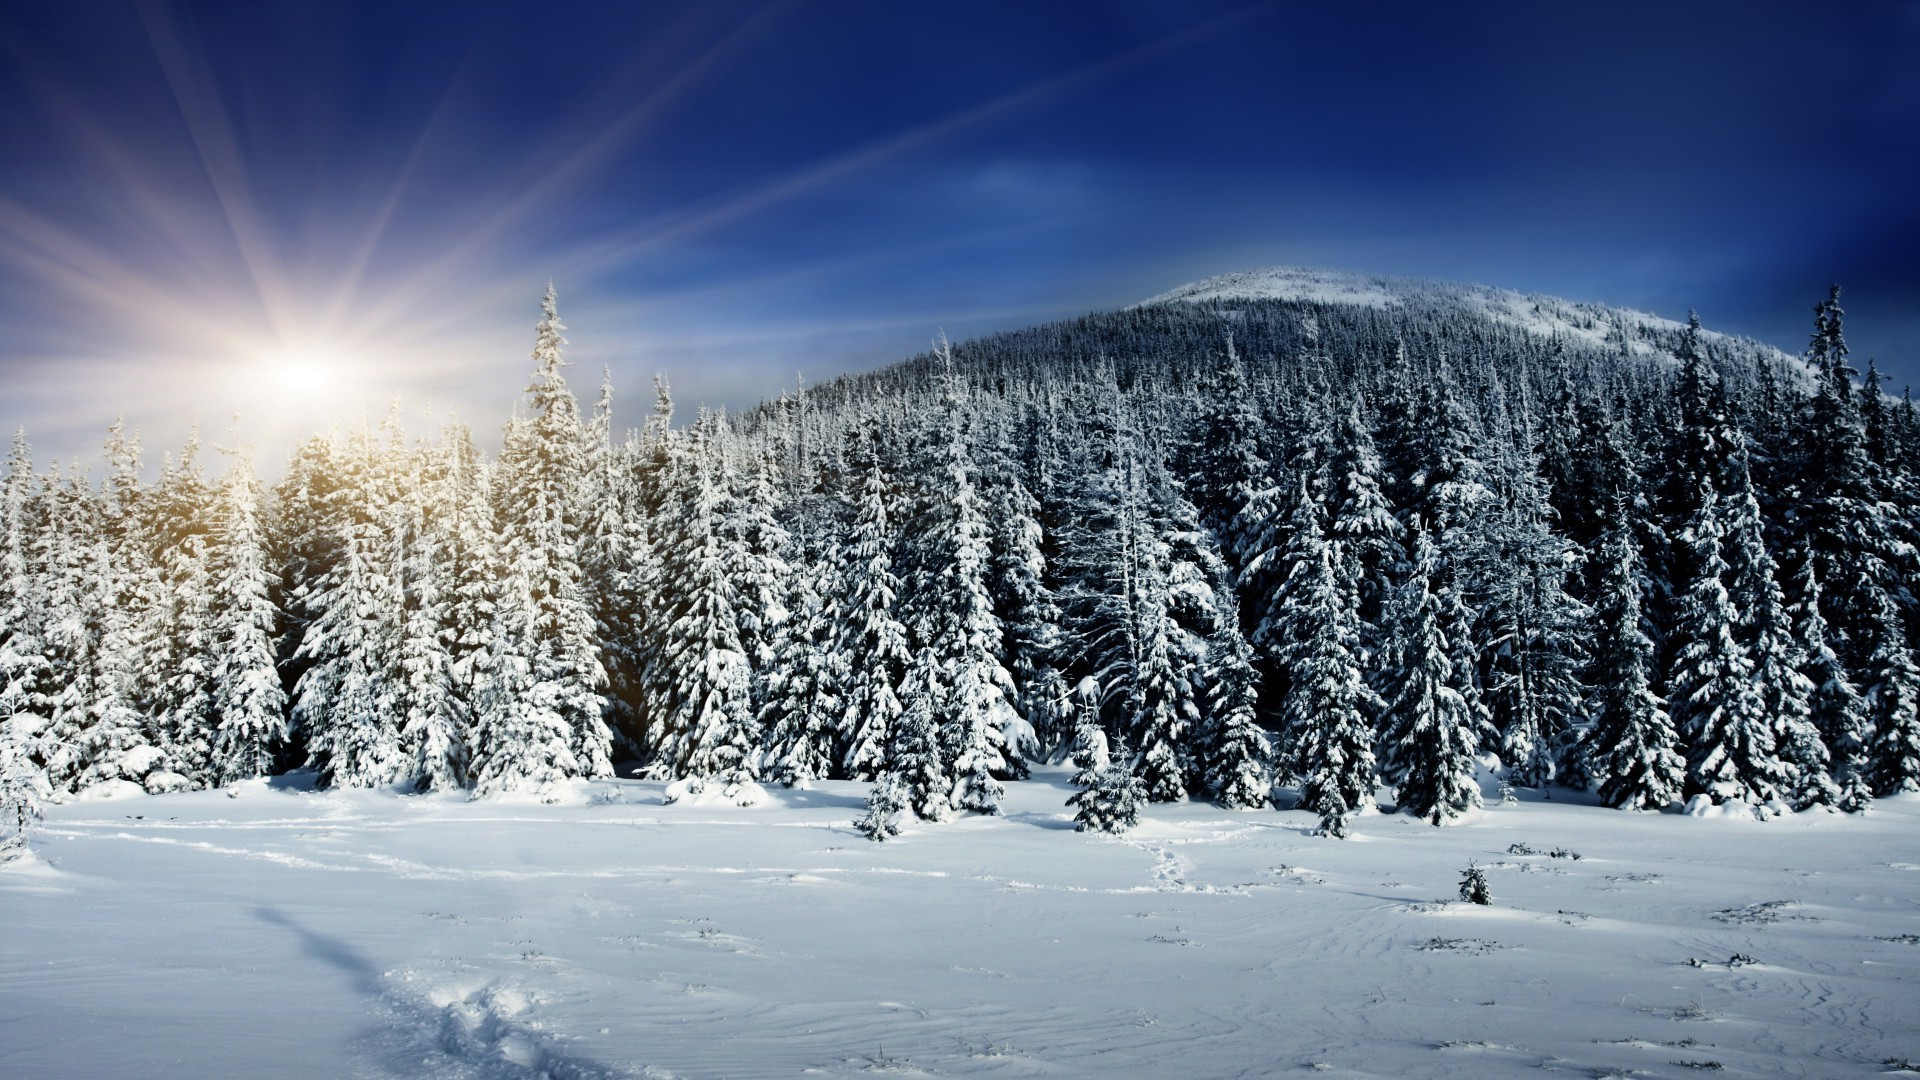 The sun illuminates the tops of snow-covered fir trees